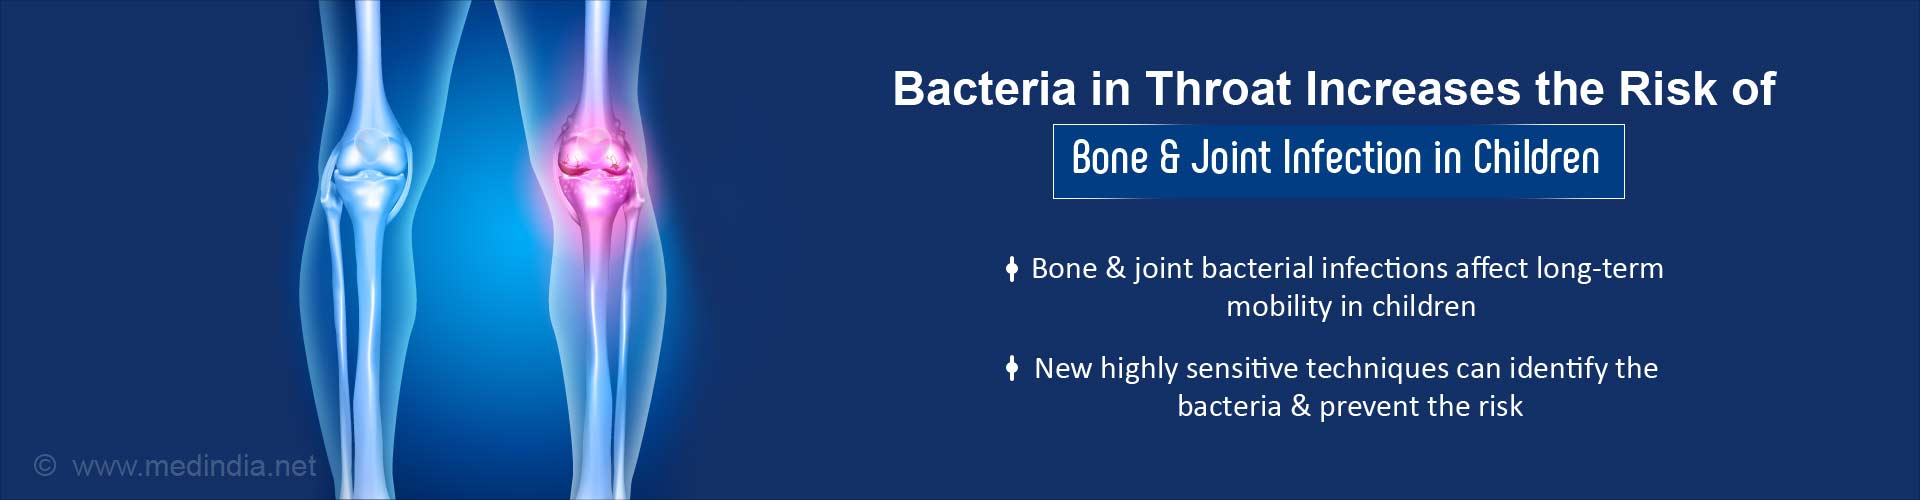 New Techniques Help Identify Bacteria Responsible for Bone, Joint Infection in Children